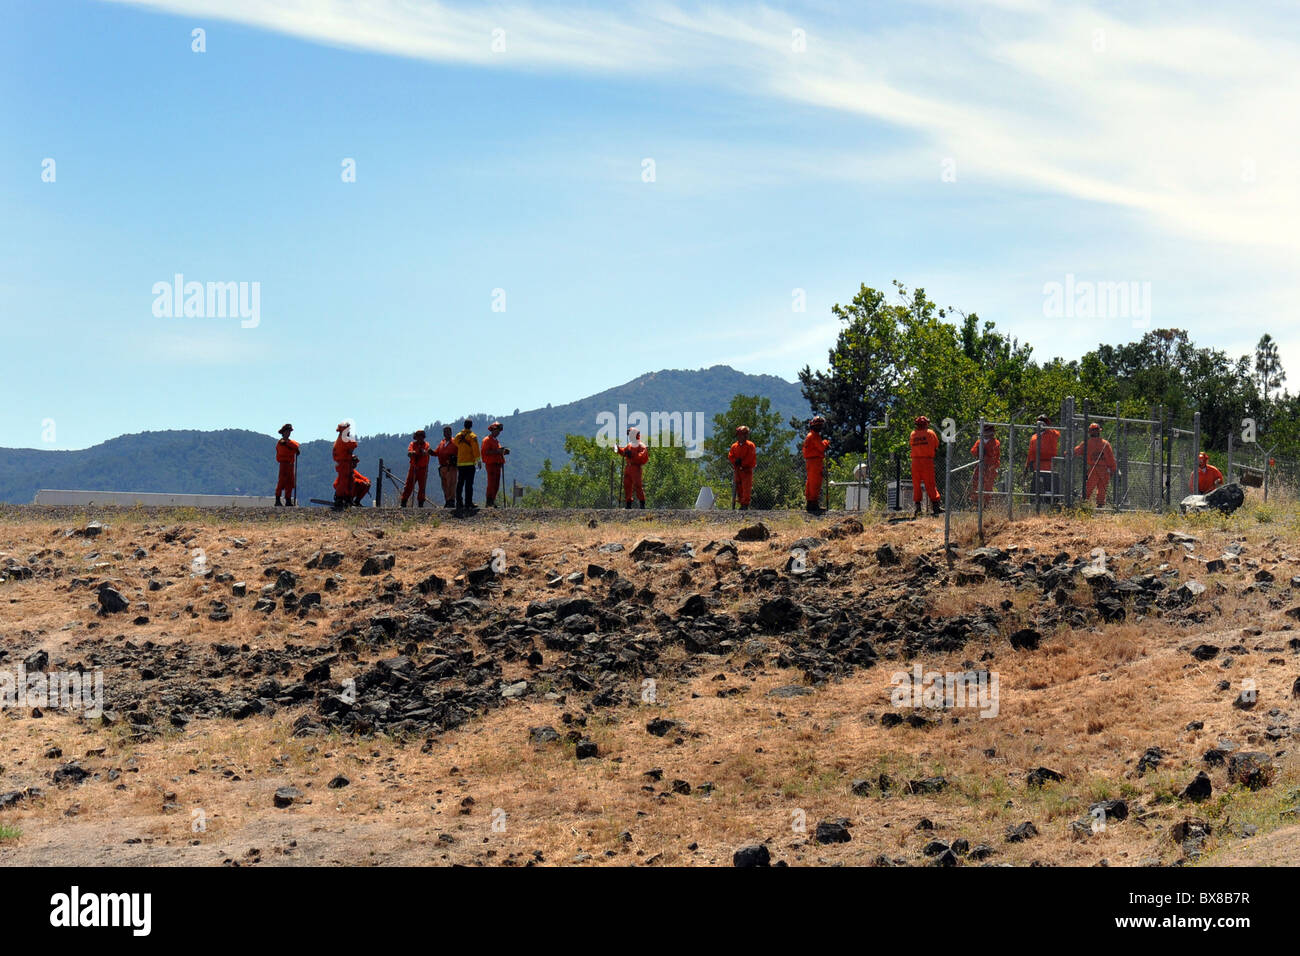 Prisoners repair a road as part of their rehabilitation back into the community, North California, USA - Stock Image